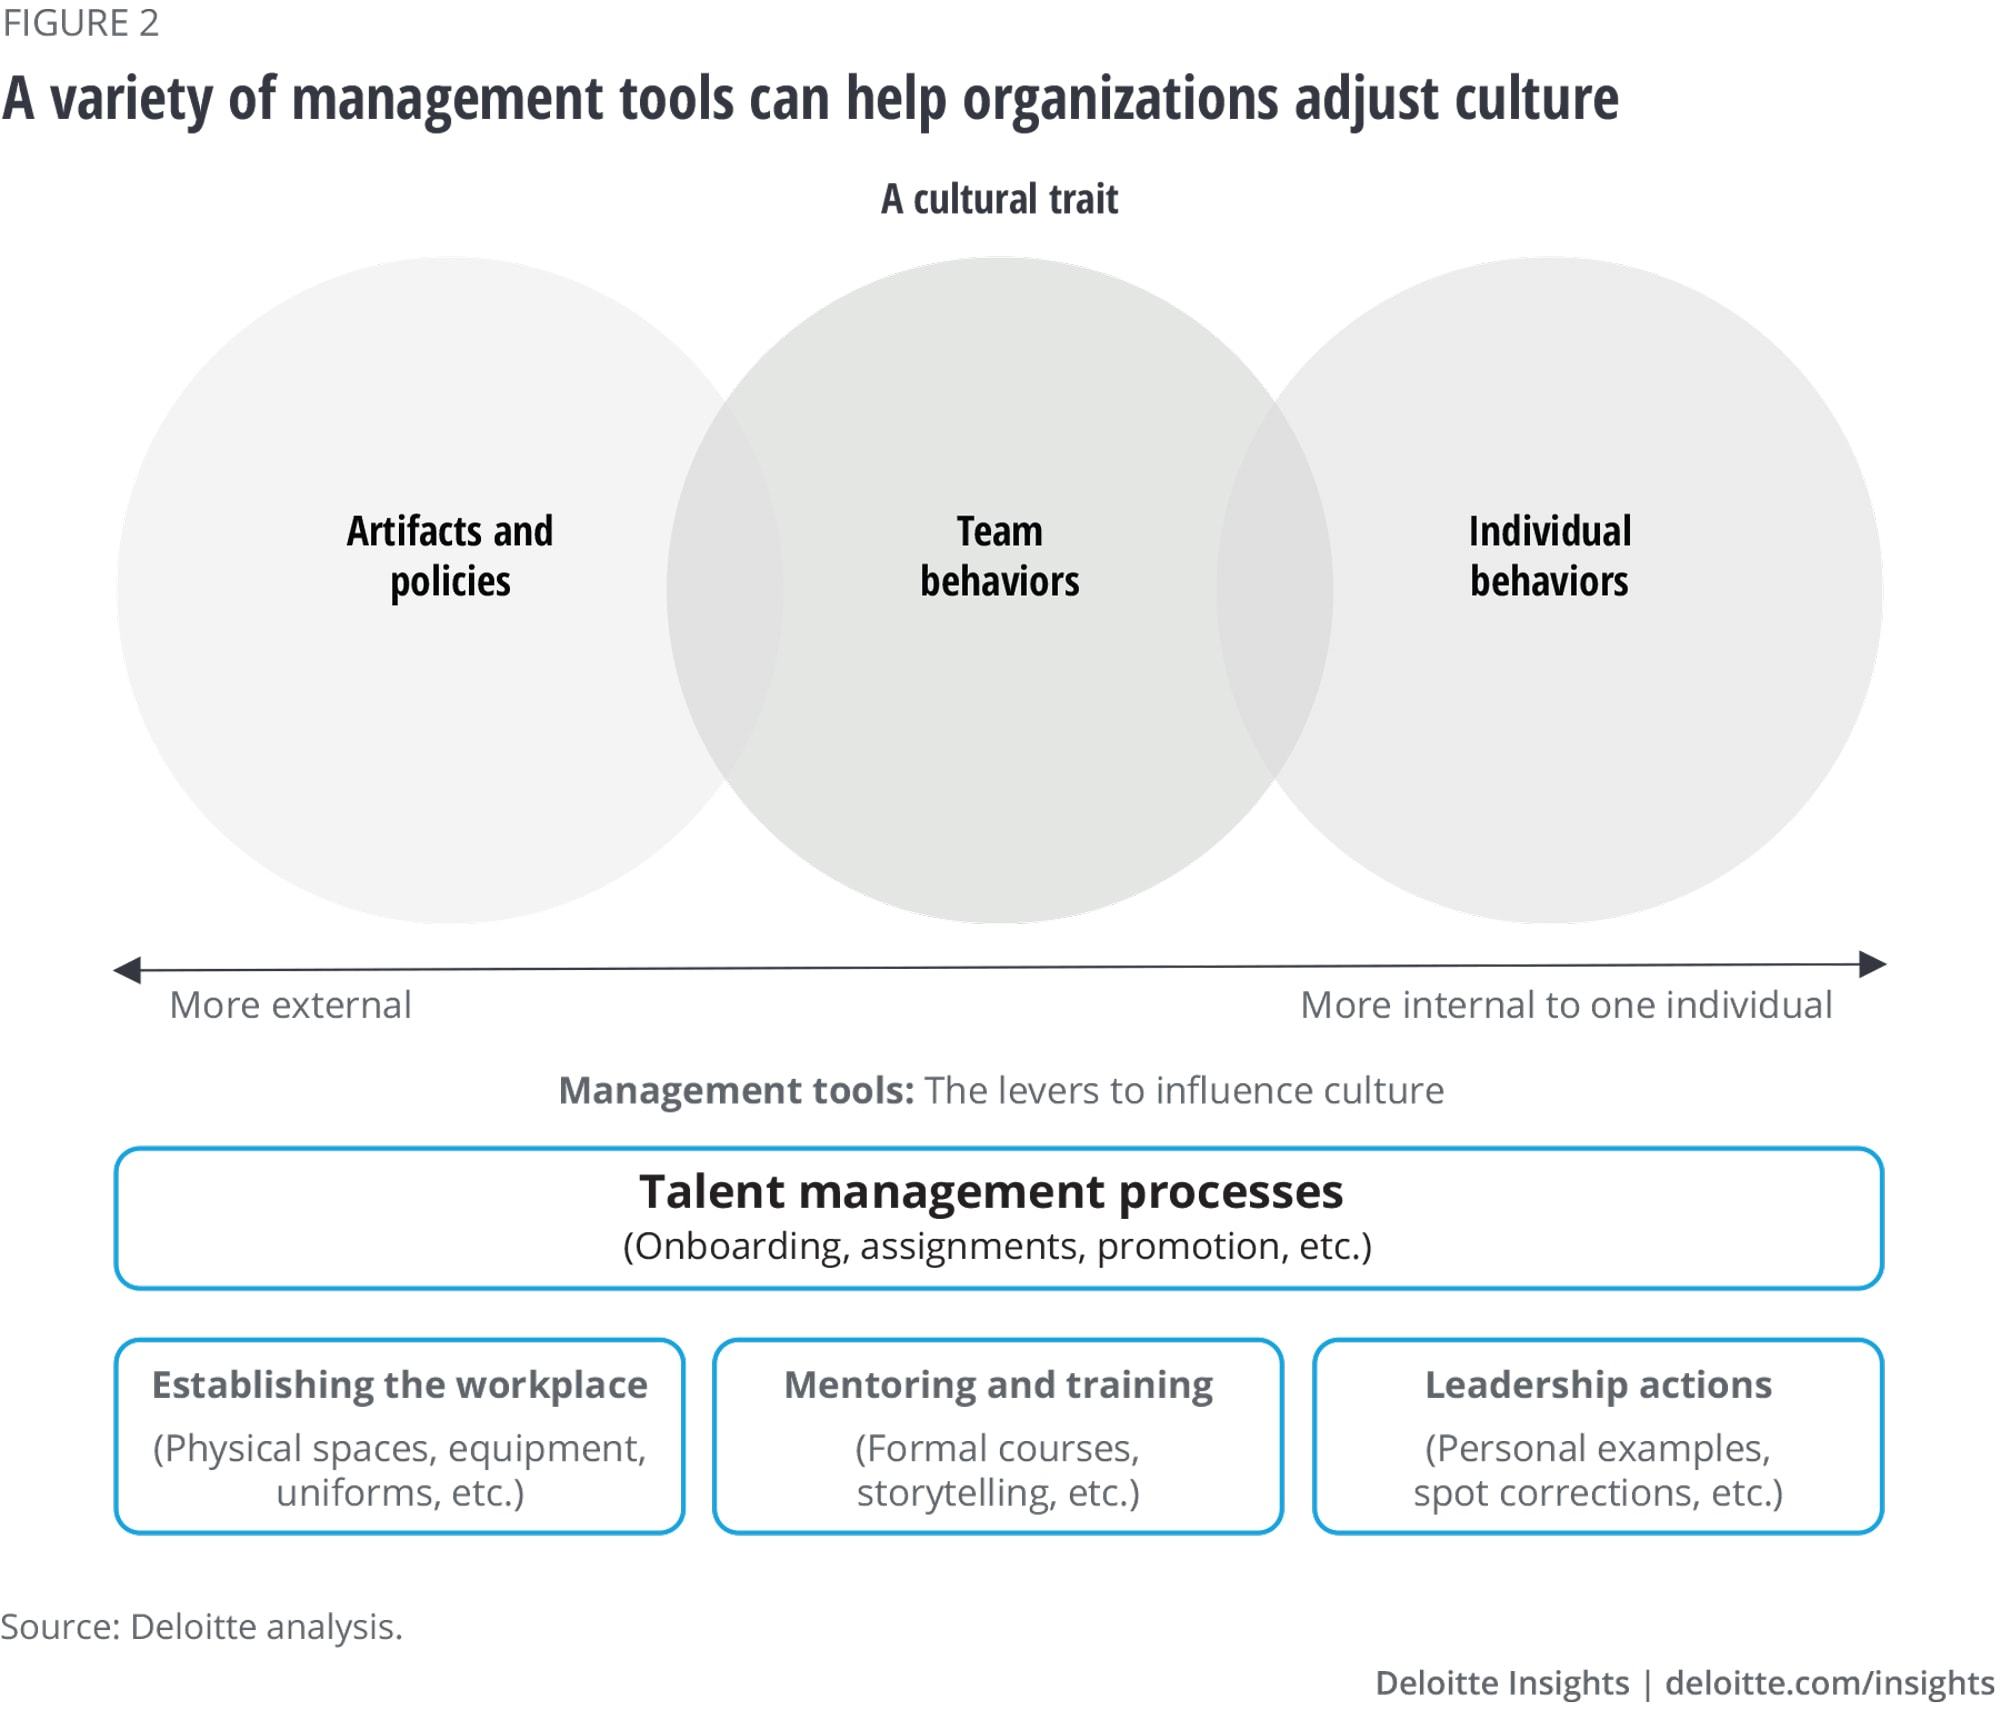 A variety of management tools can help organizations adjust culture